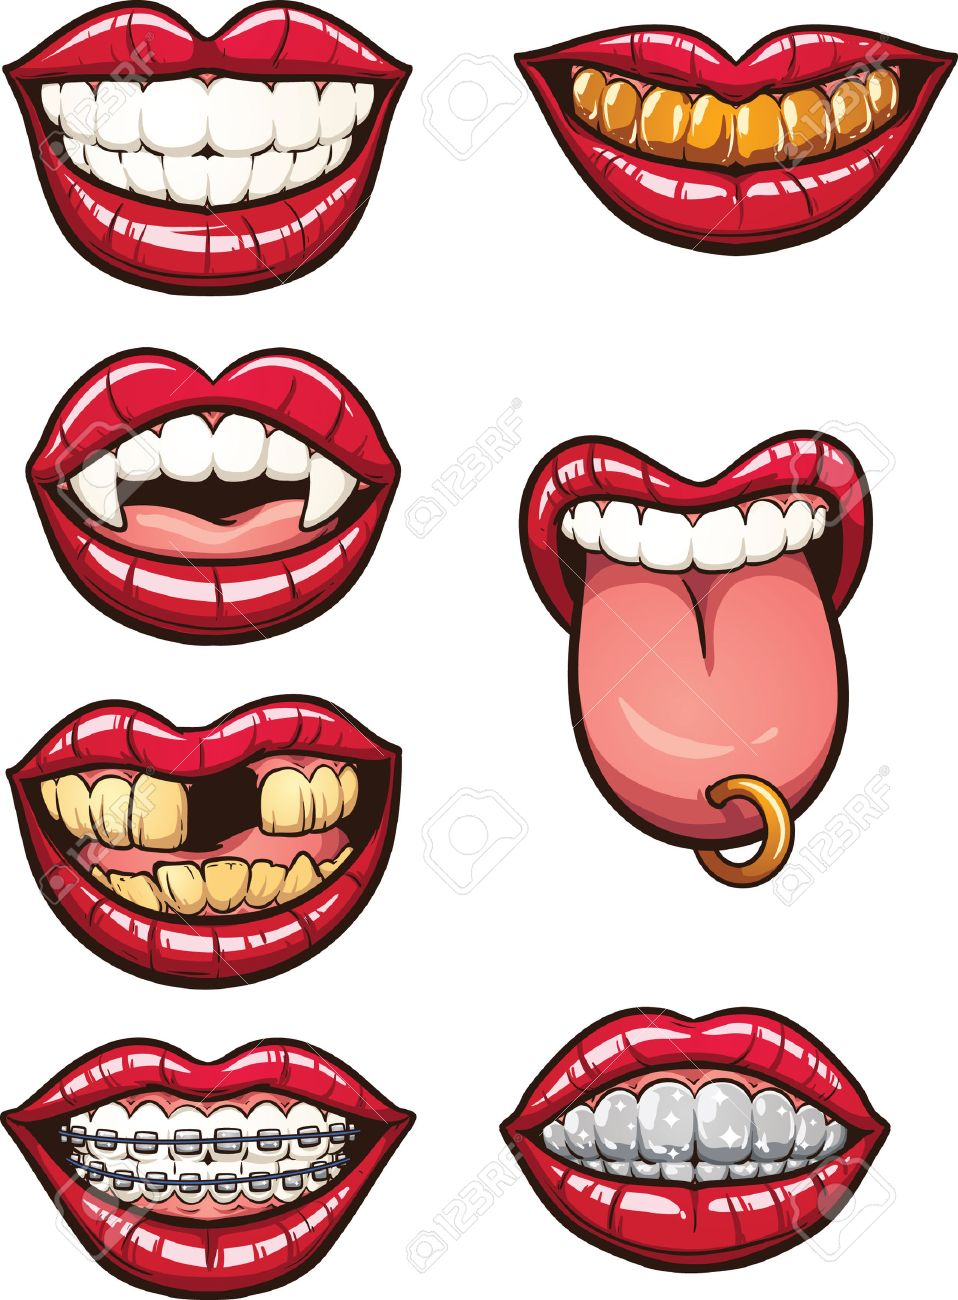 Teeth Smile Clipart